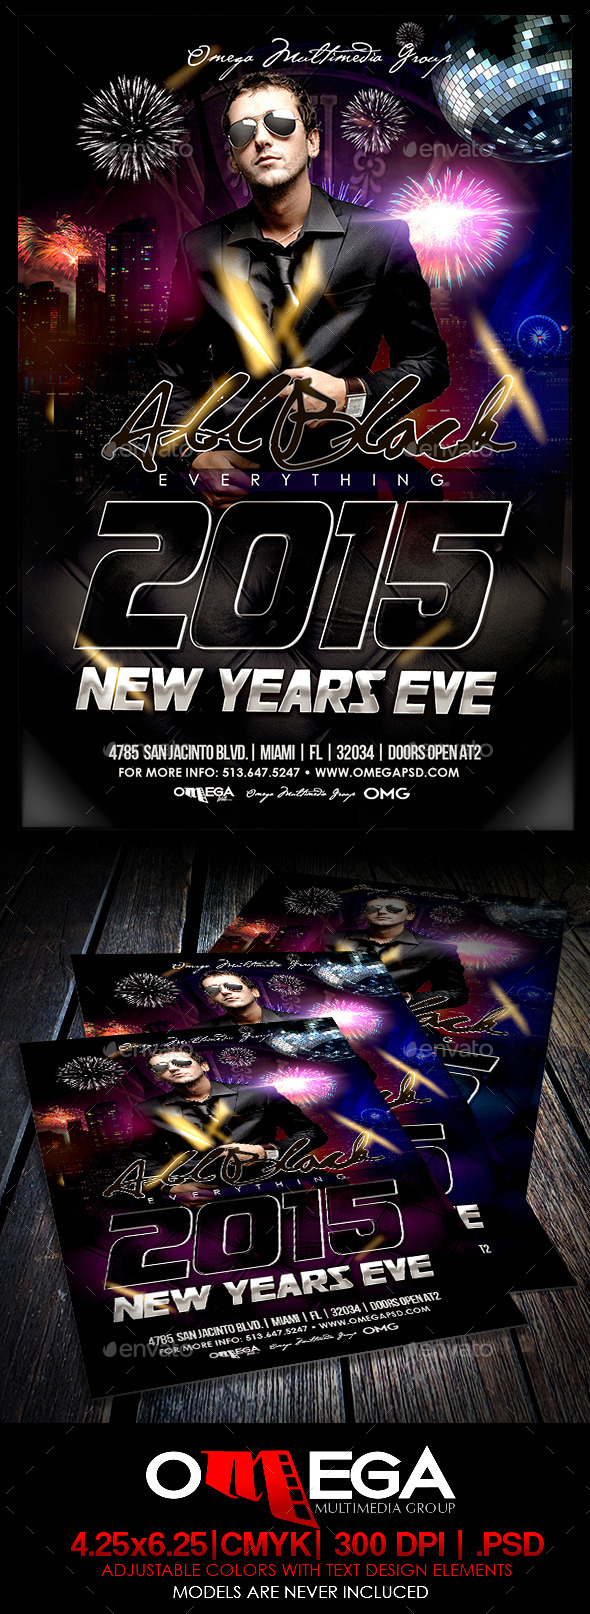 All Black 2015 - Events Flyers